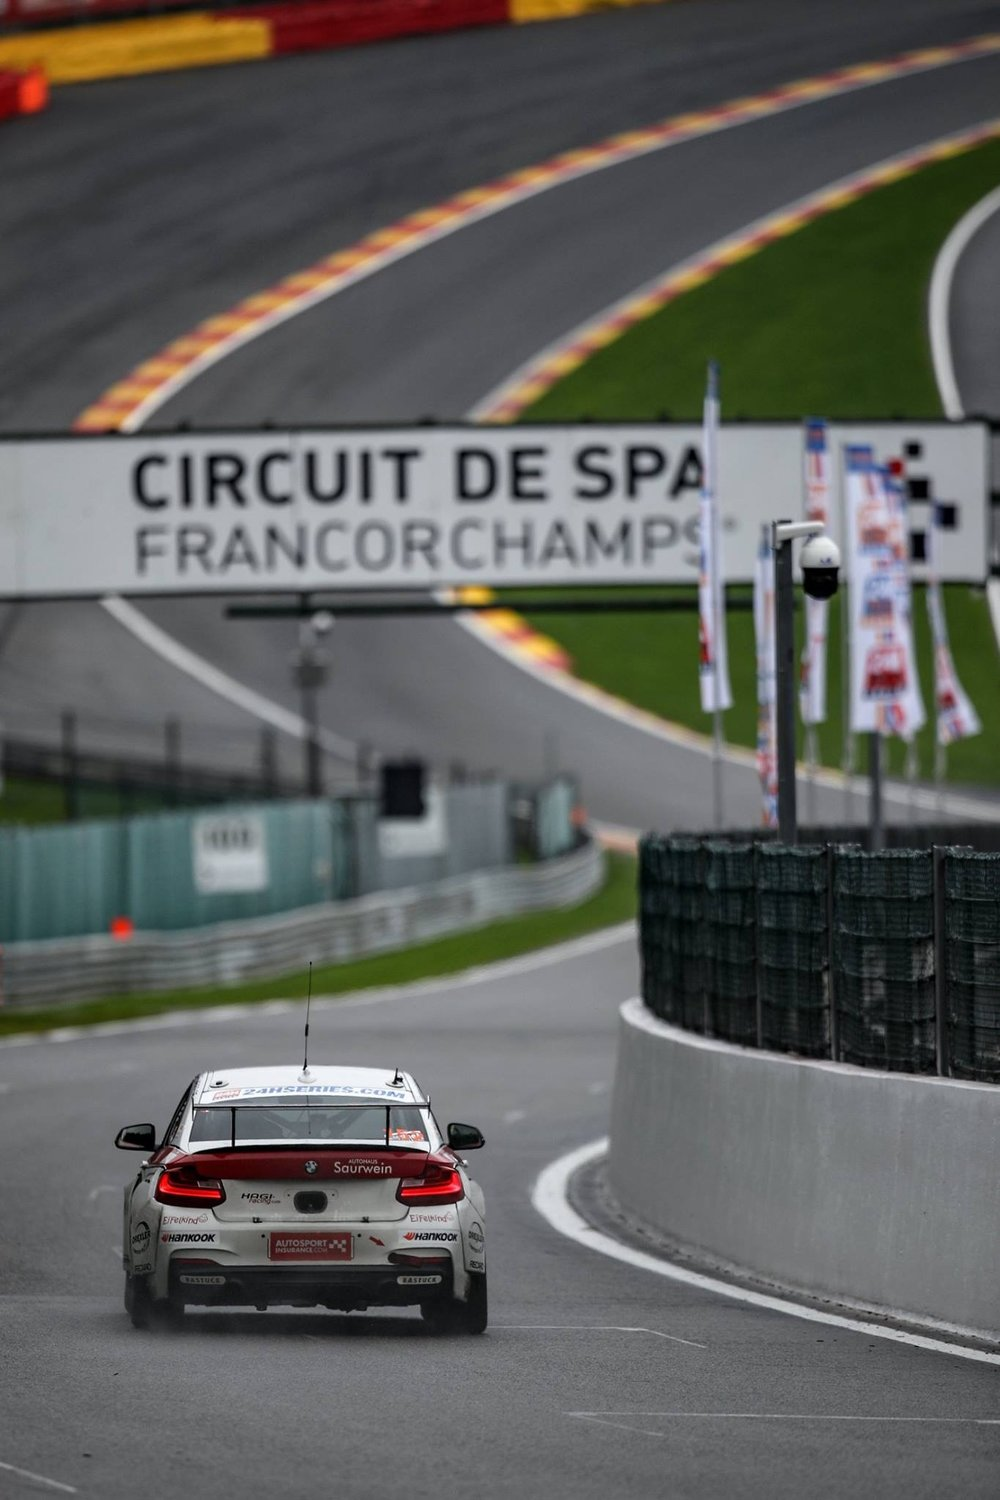 Spa Francorchamps (heading to Eau Rouge)